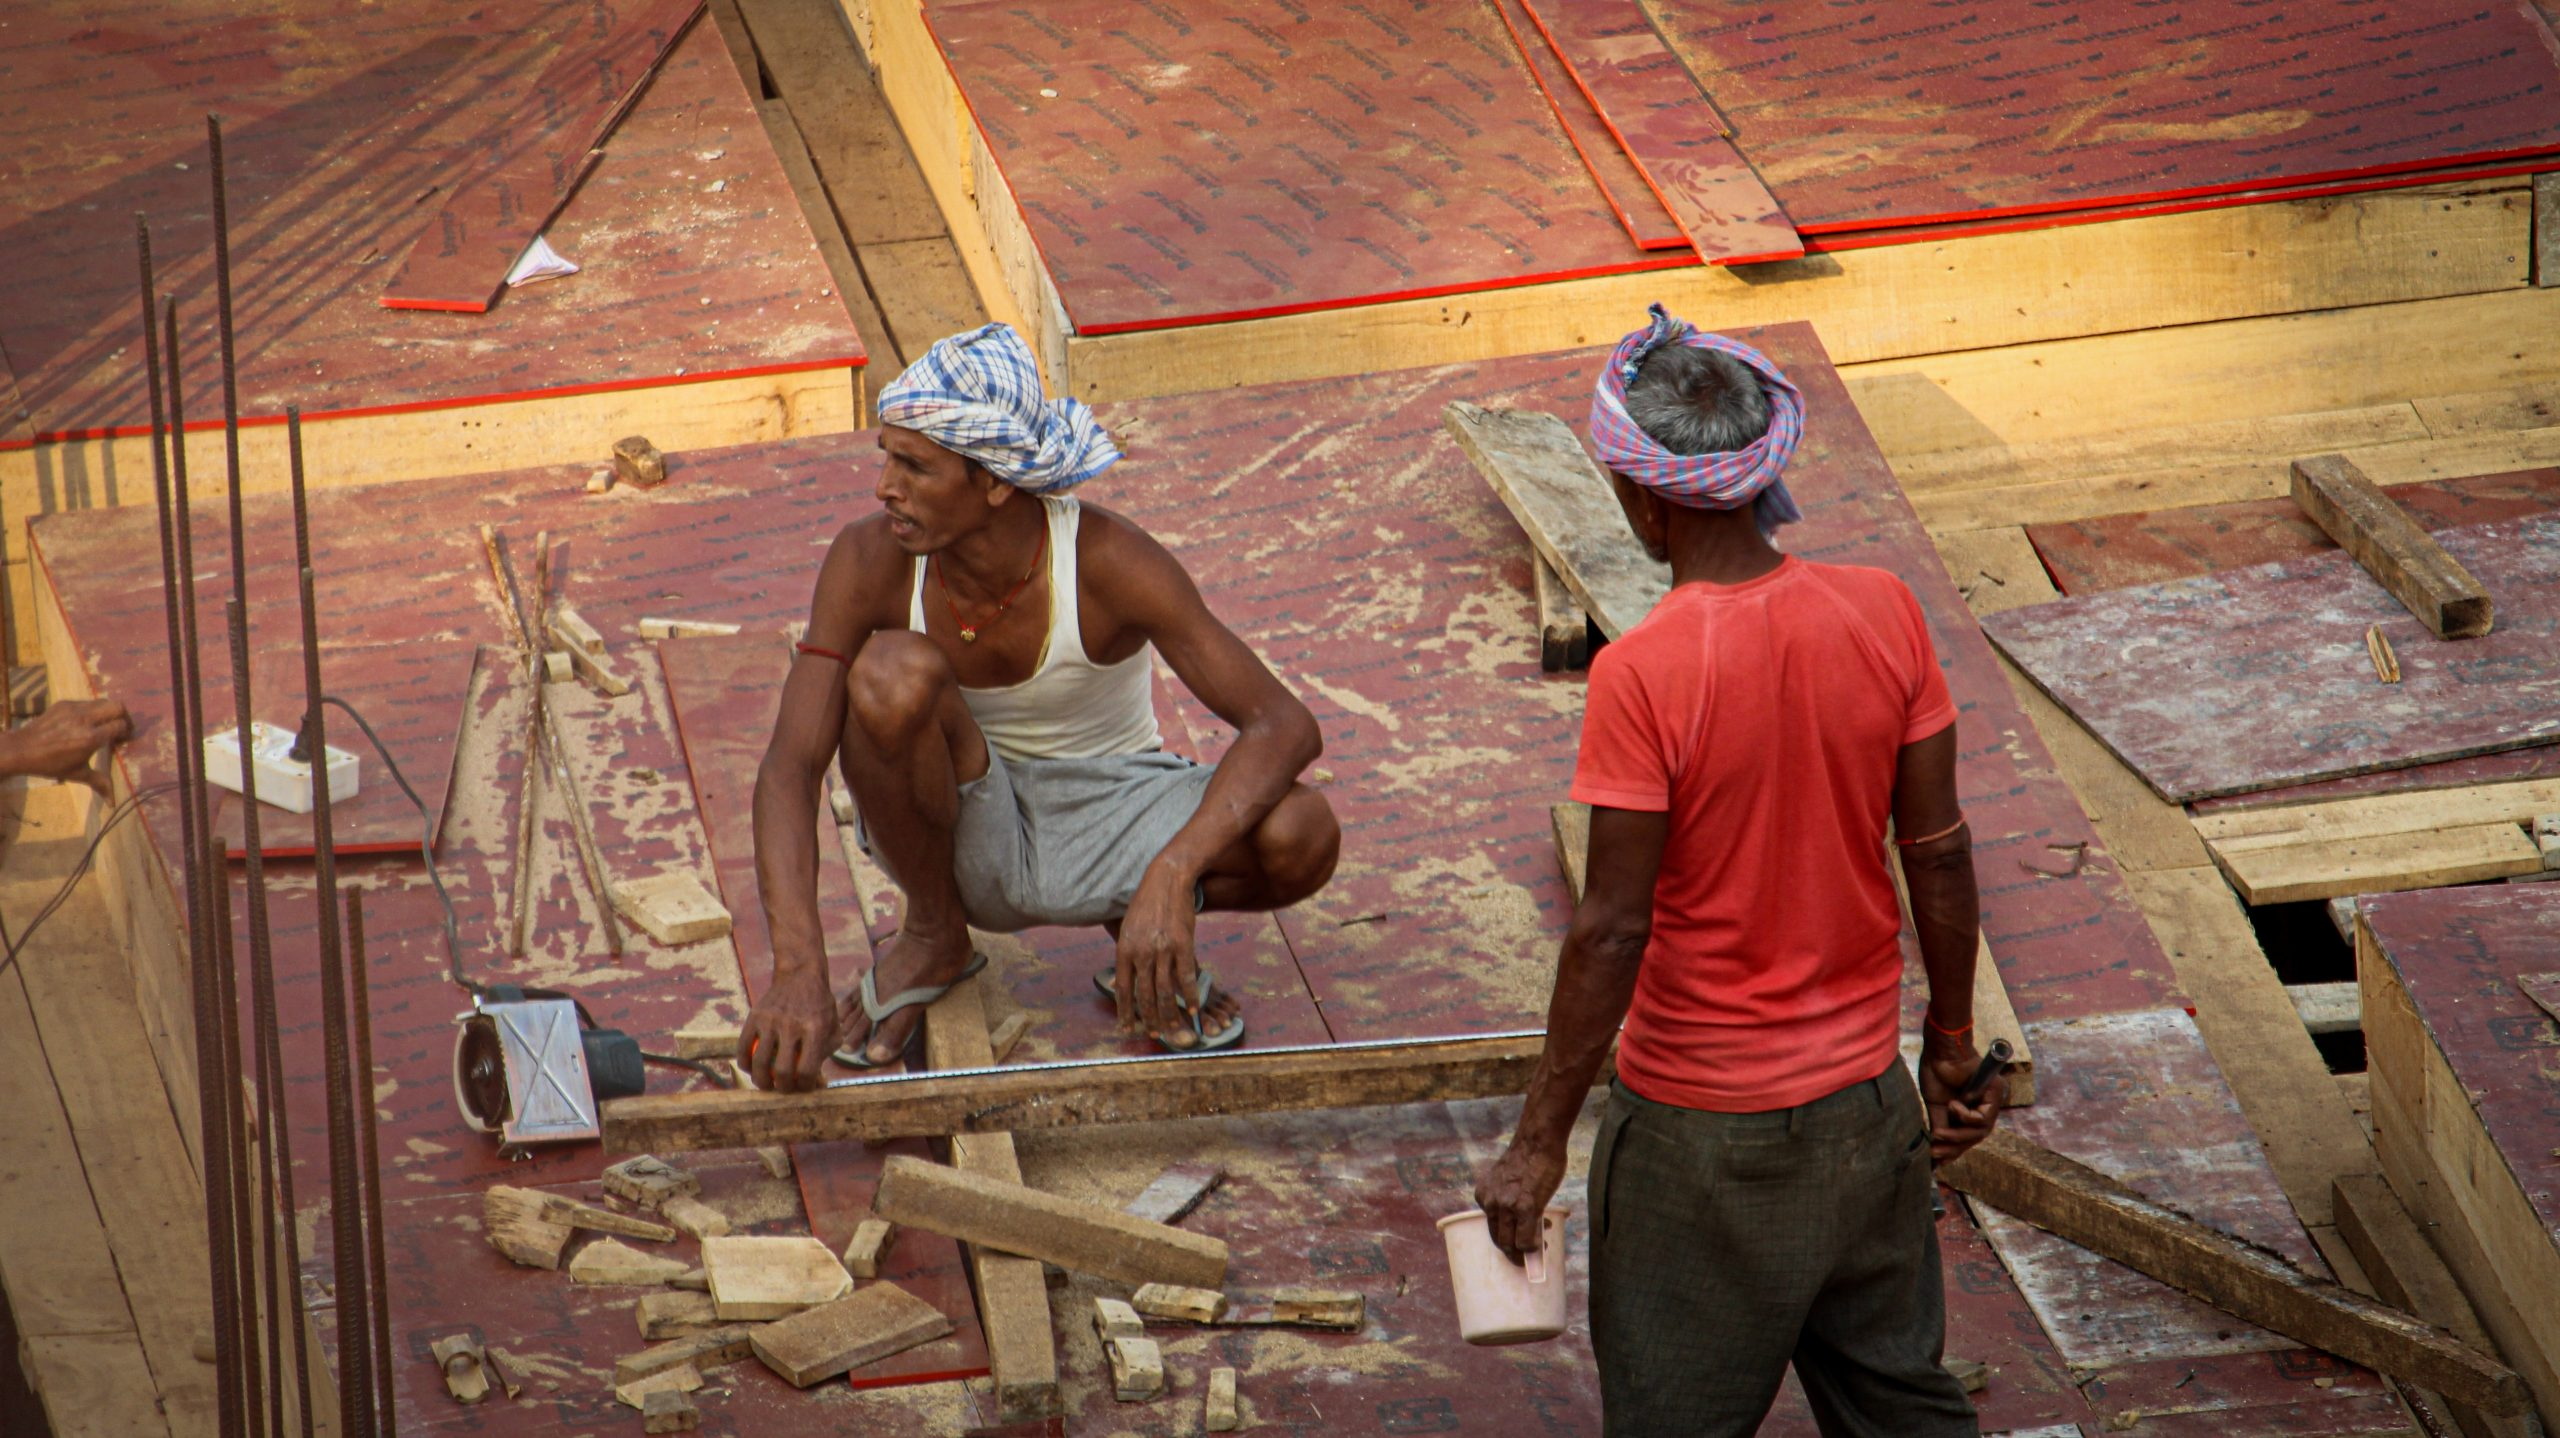 Carpenters working on a building